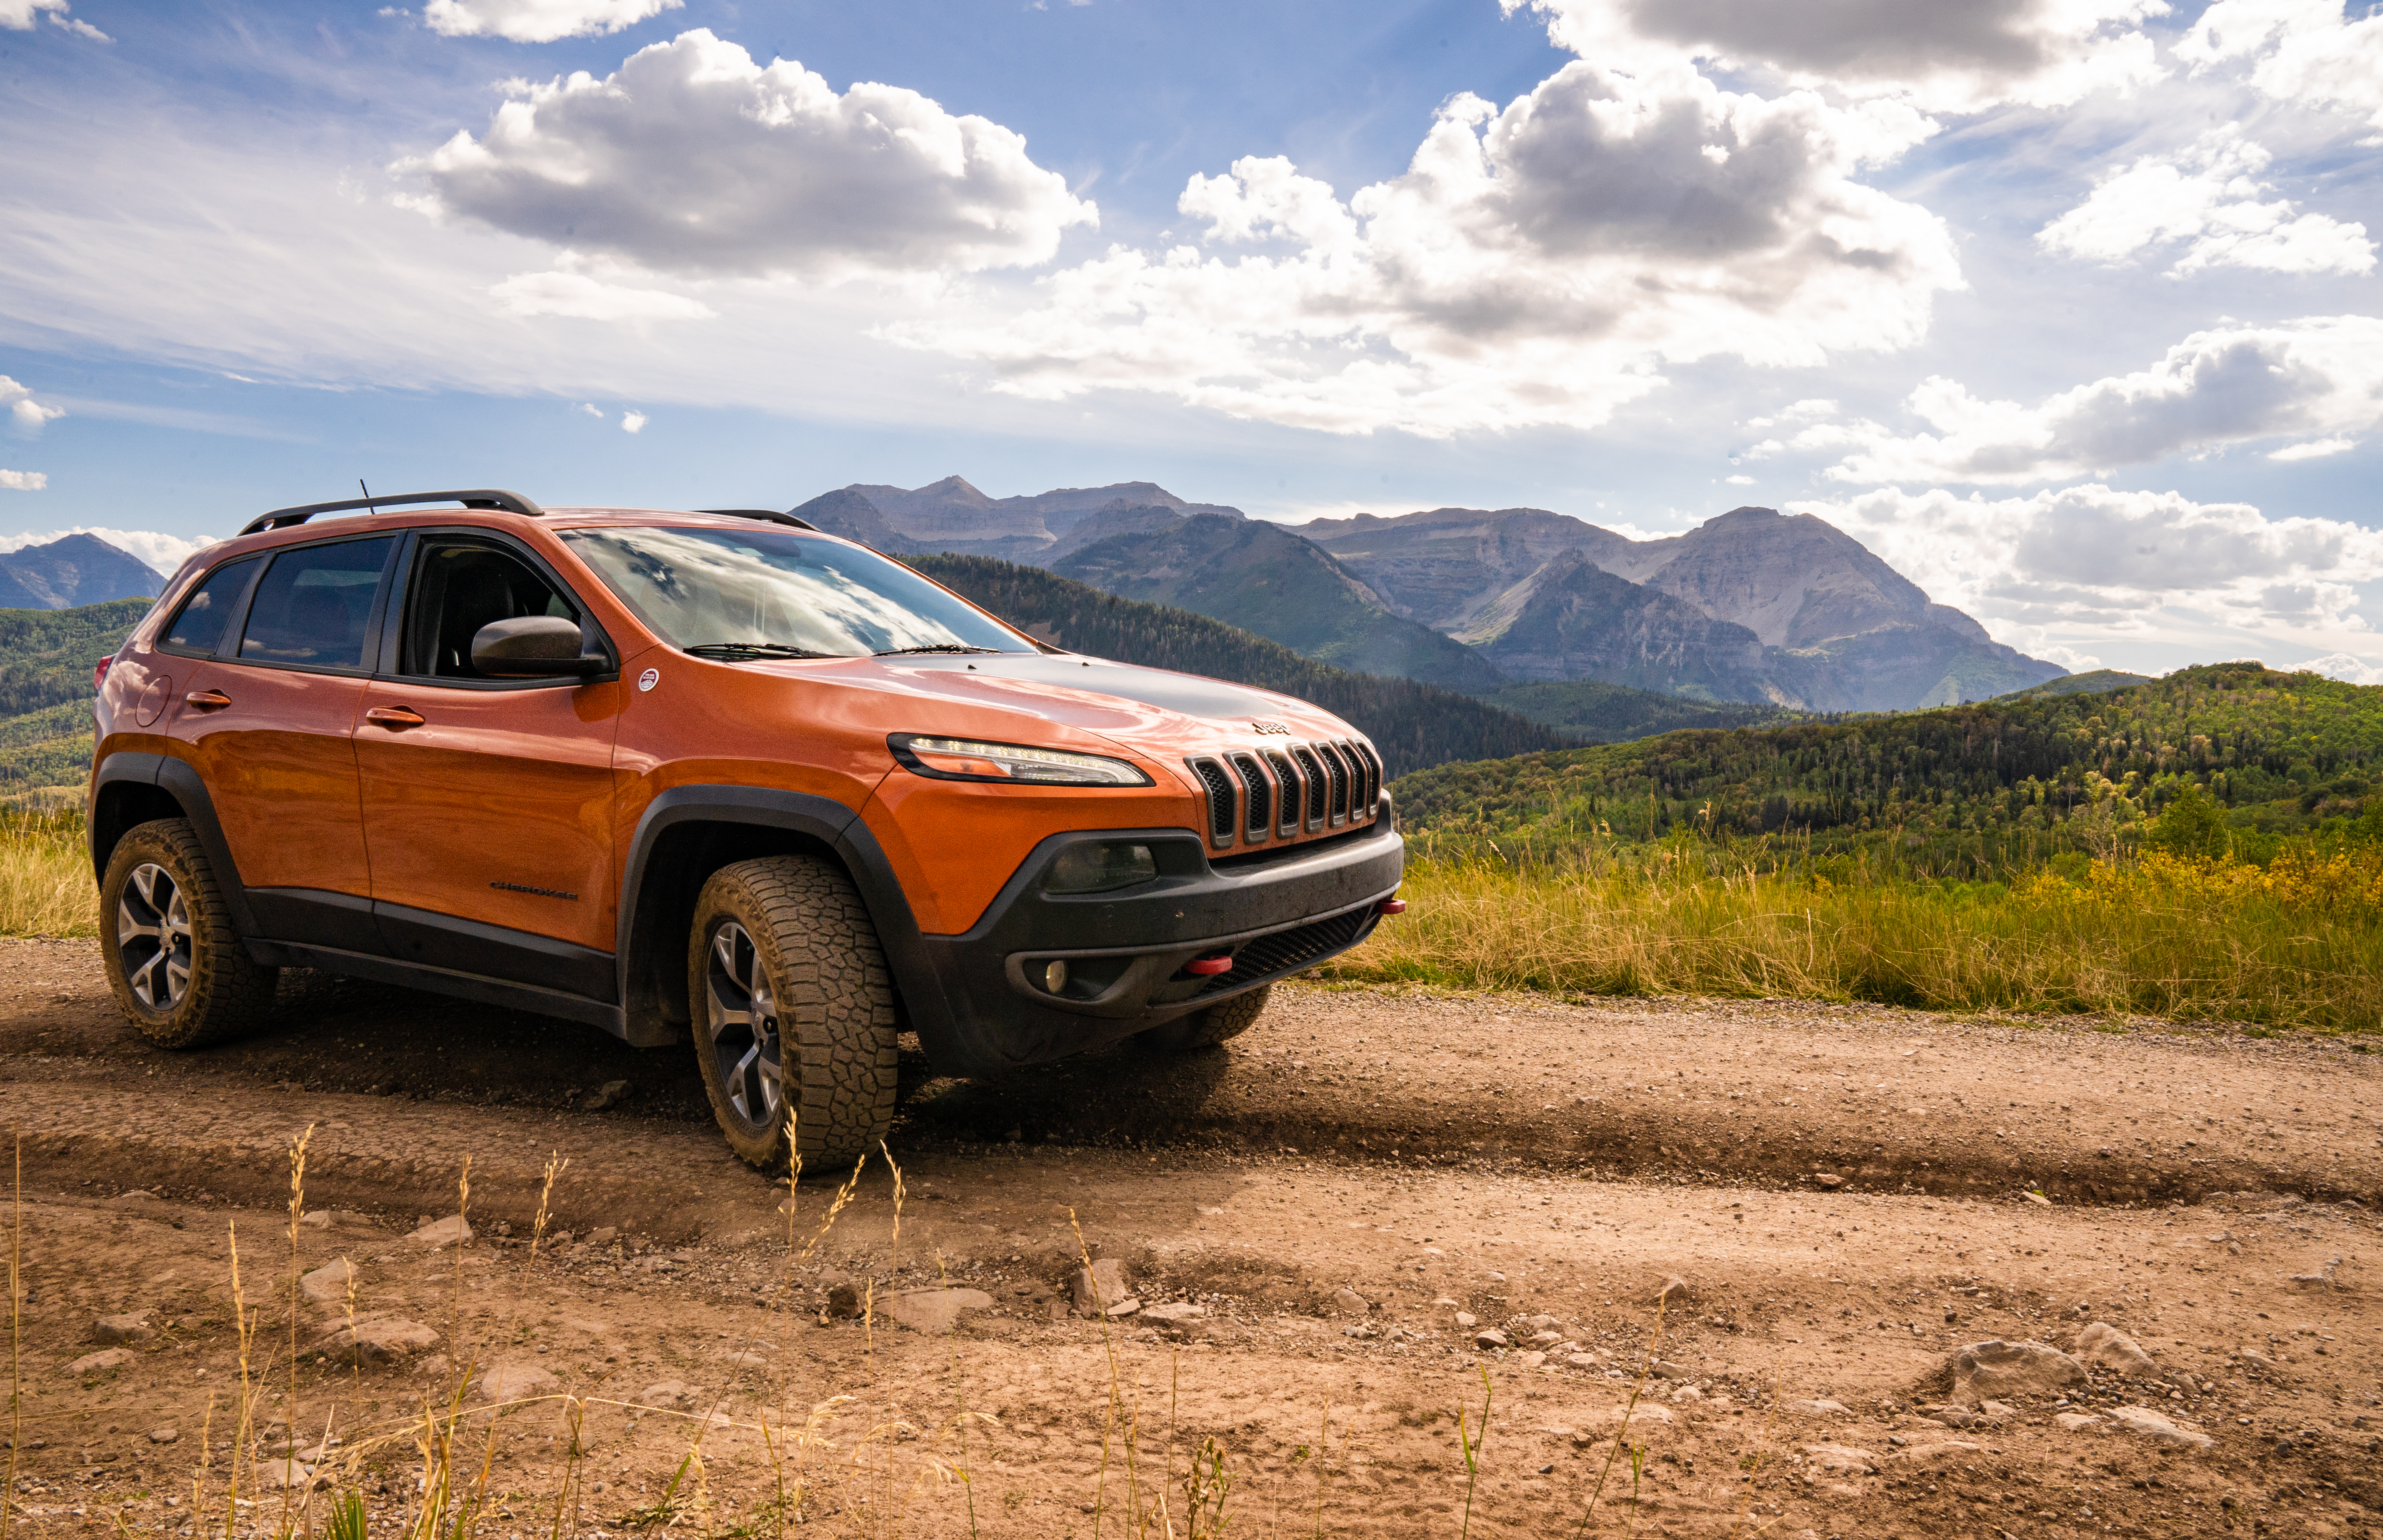 Jeep Cherokee Trailhawk on a dirt road in front of Mt timpanogos